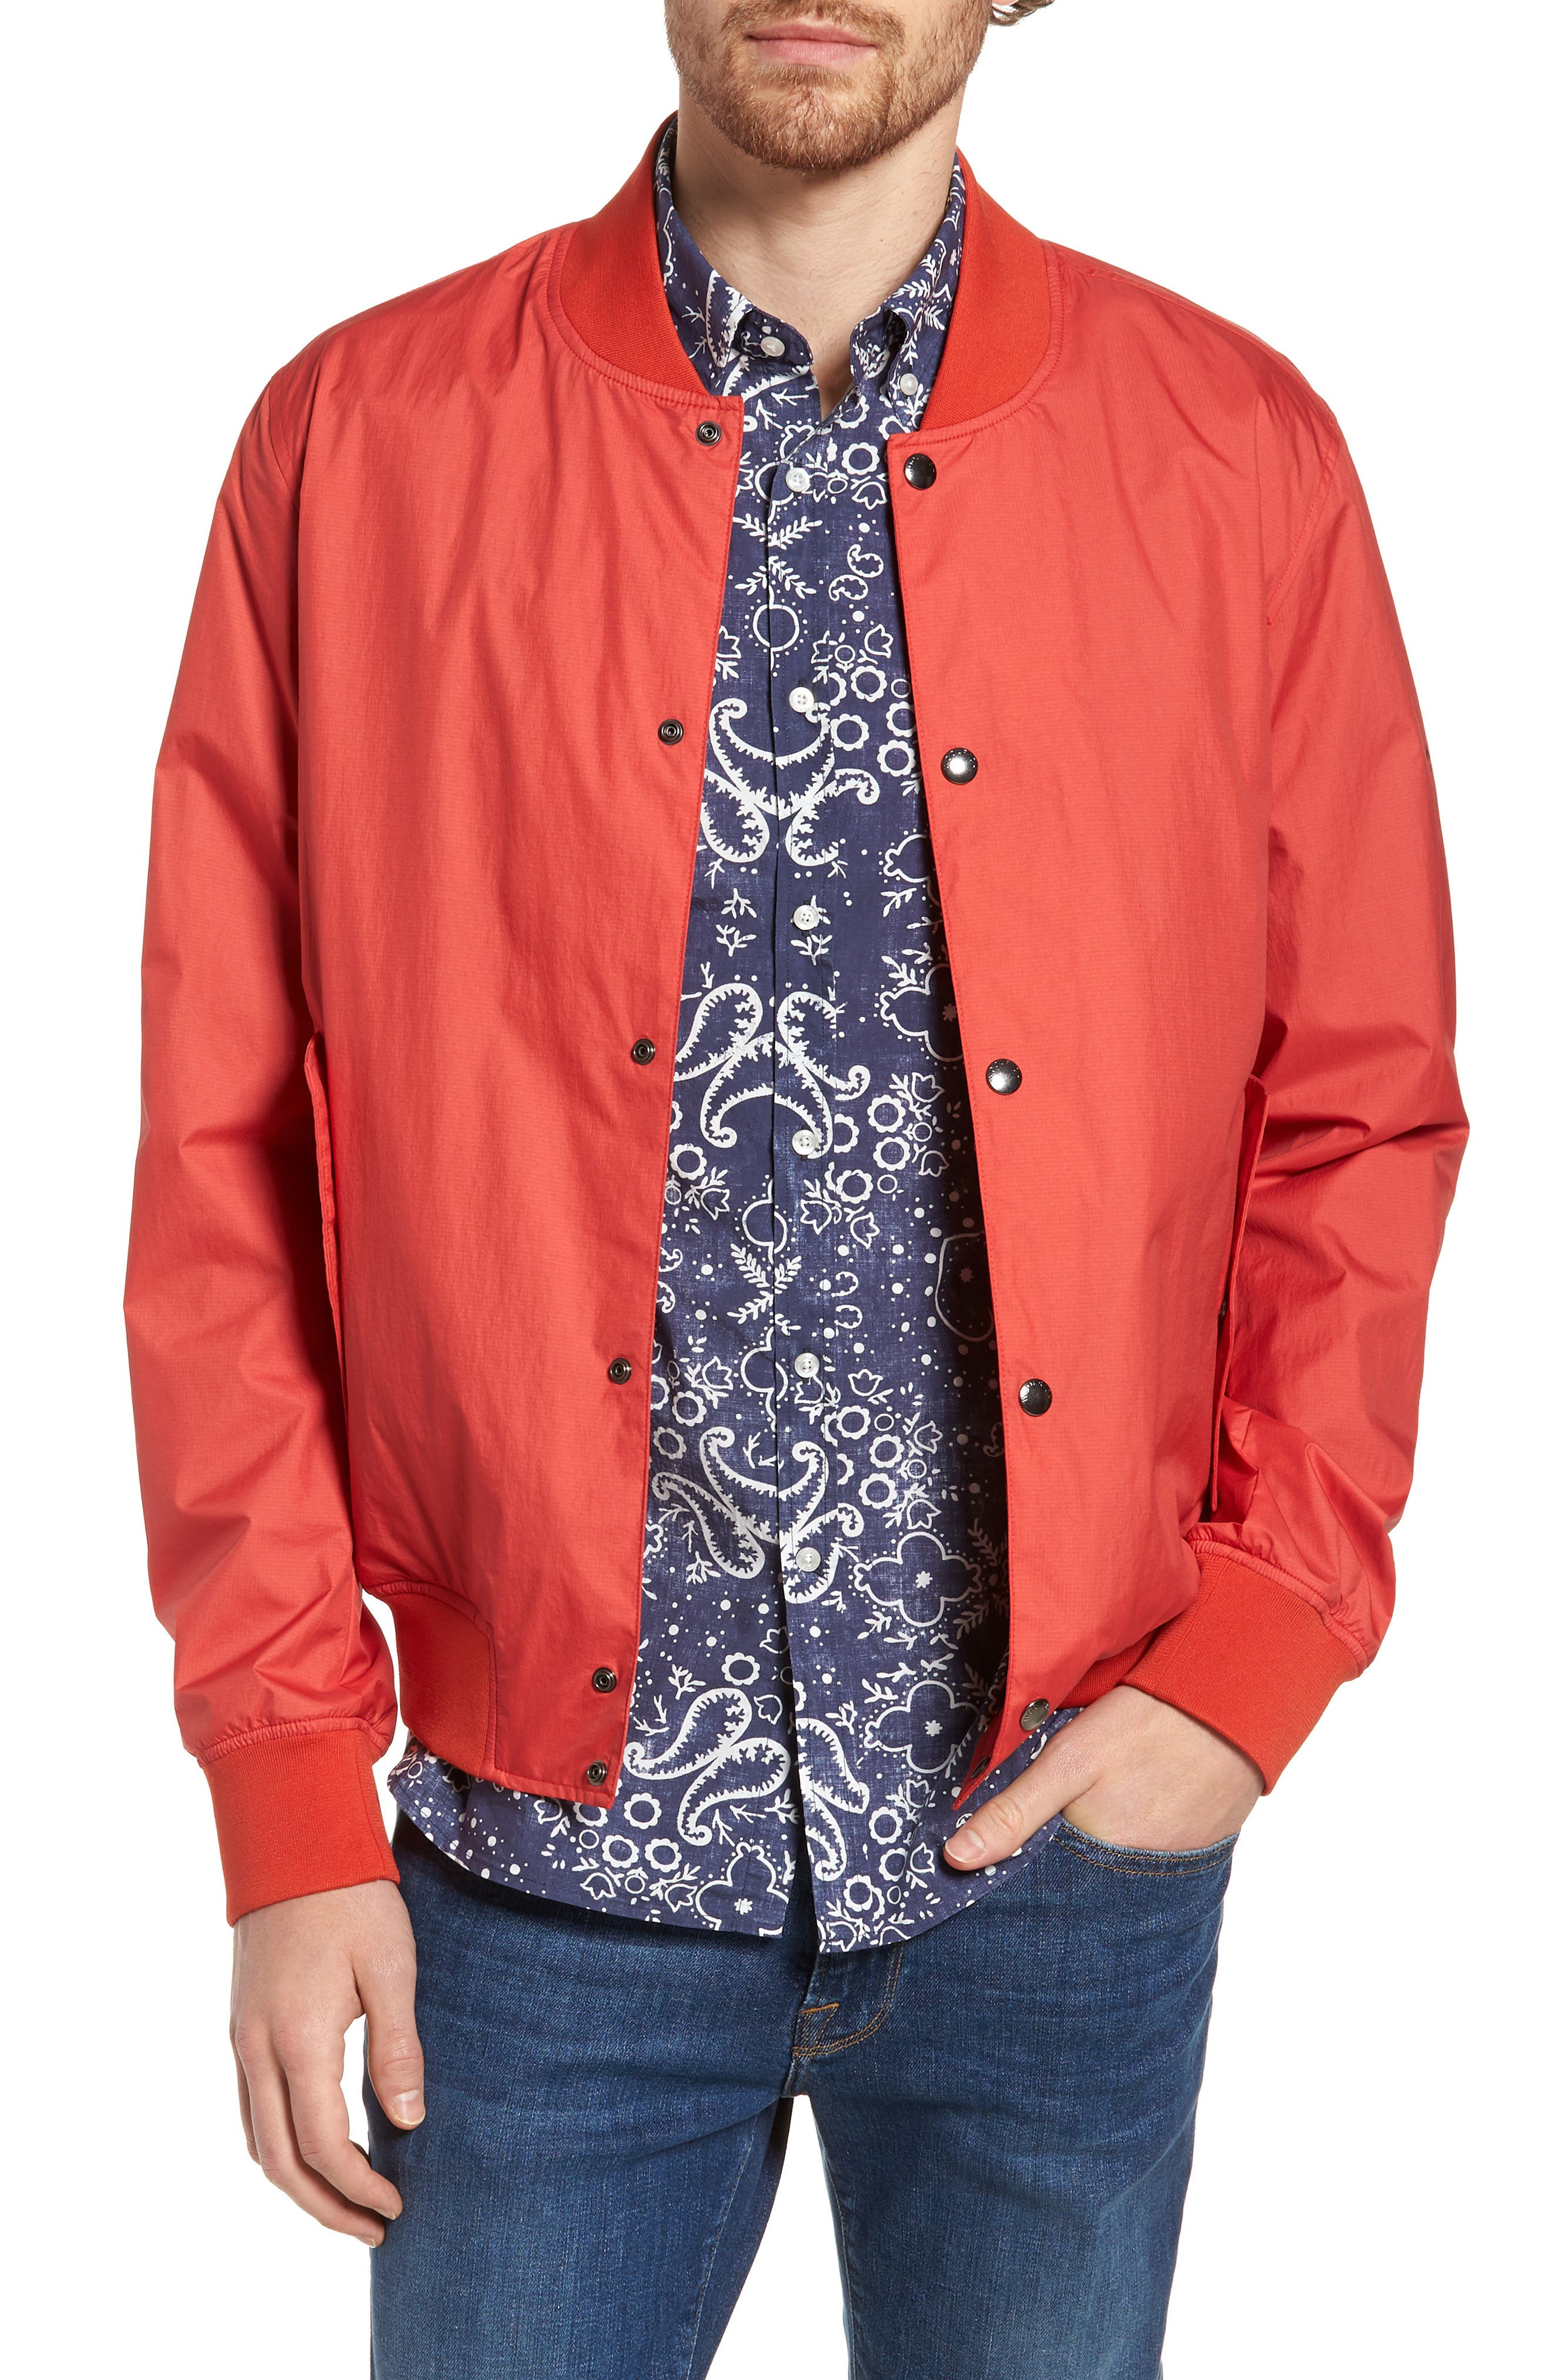 Wallaby Bomber Jacket,                         Main,                         color, Aurora Red